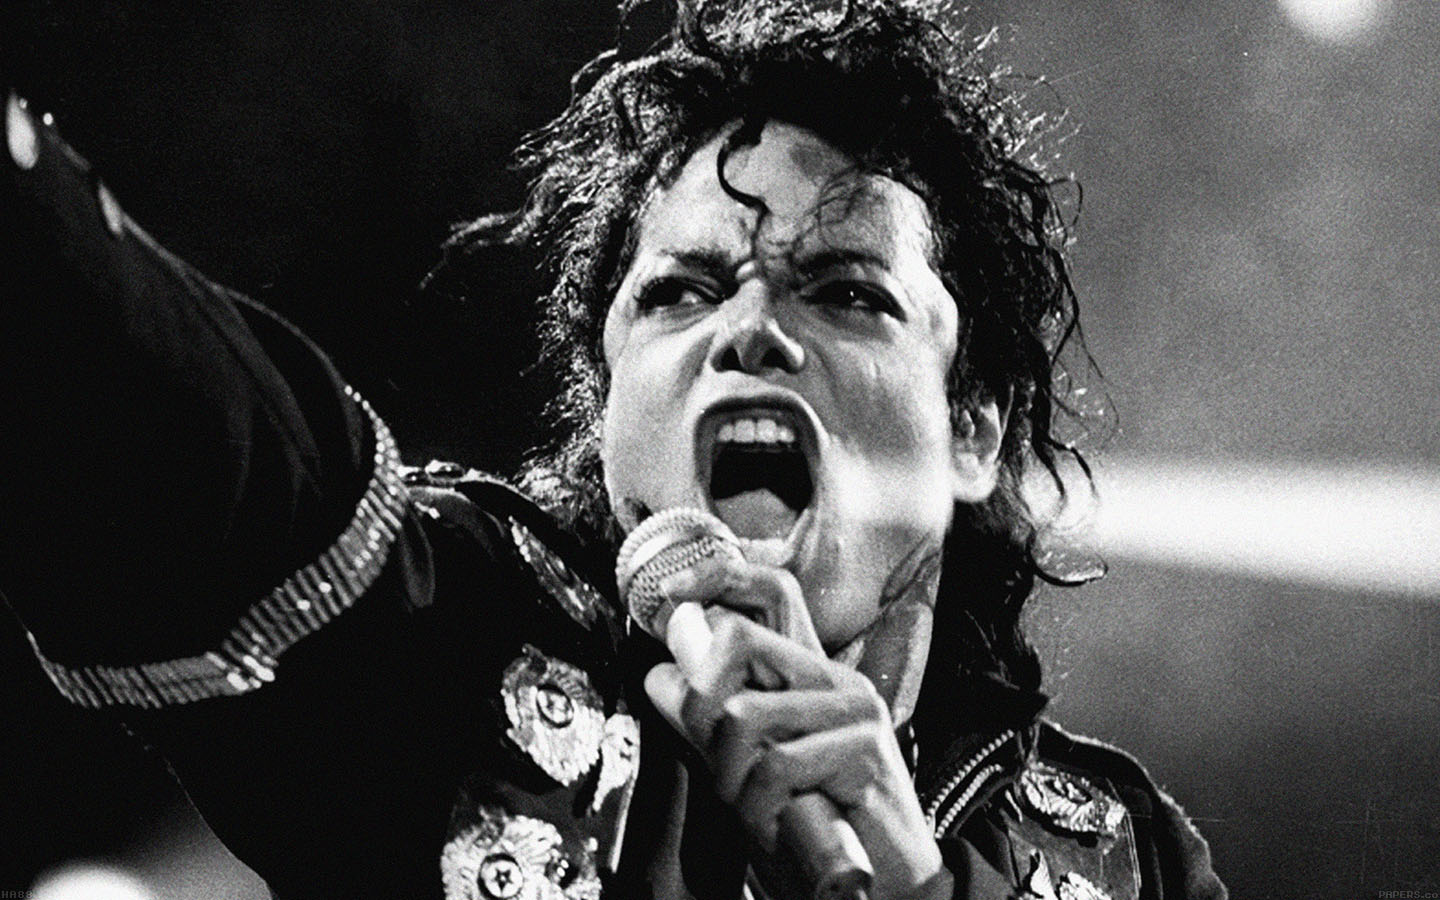 ha88-wallpaper-michael-jackson-sing-music-face - Papers.co